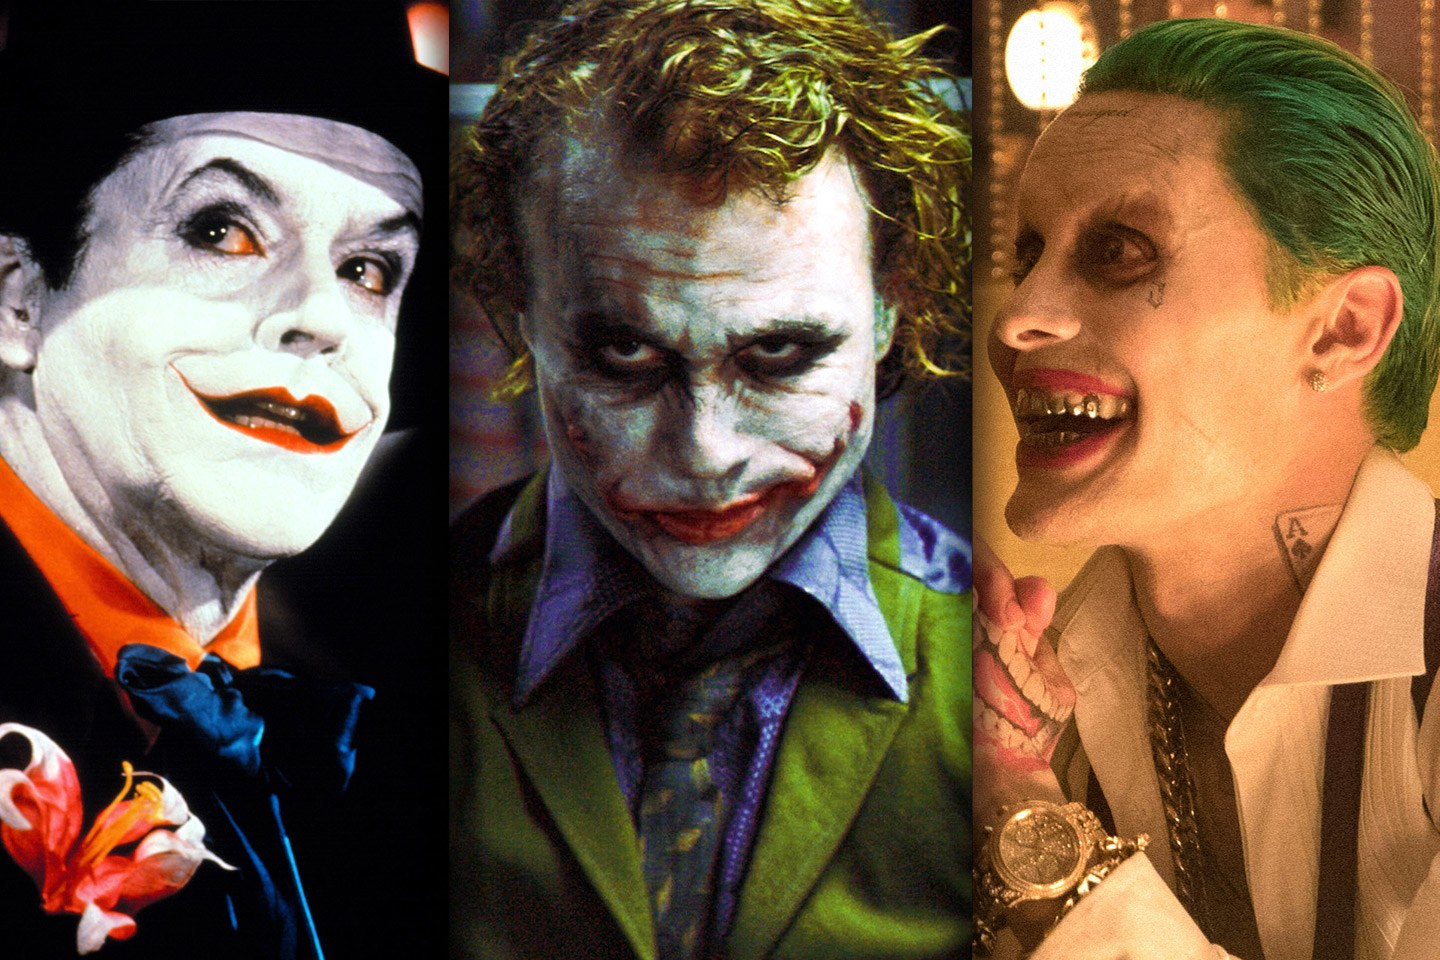 Who should be the next Joker?